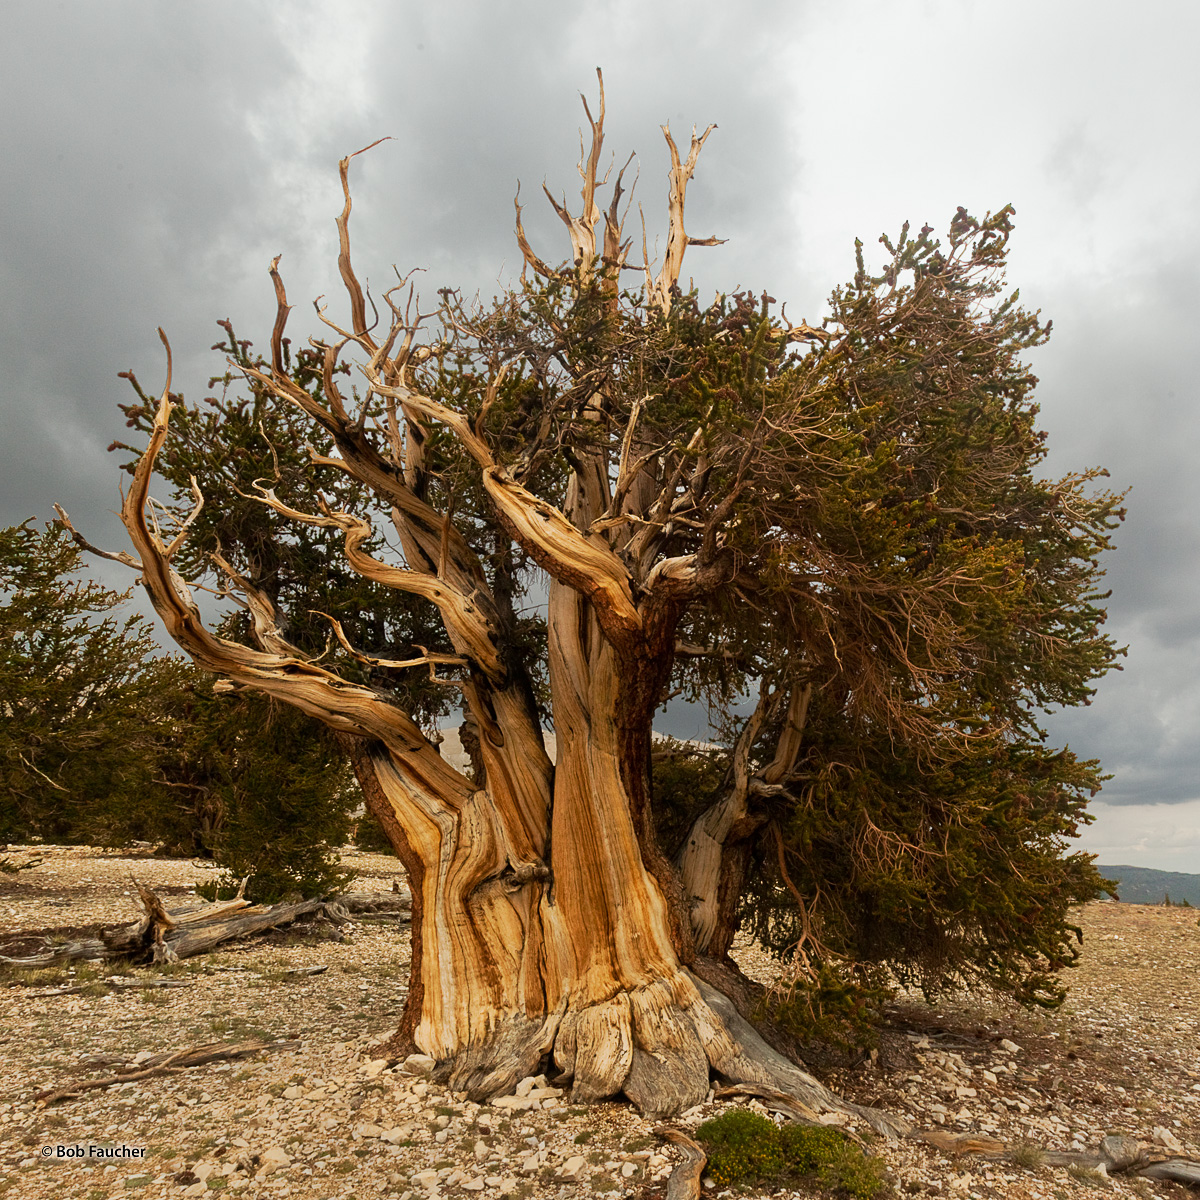 Multi-trunked Bristlecone Pine thrives in the wind-blown Patriarch Grove, well above 11,000 feet. The leeward side of the tree...